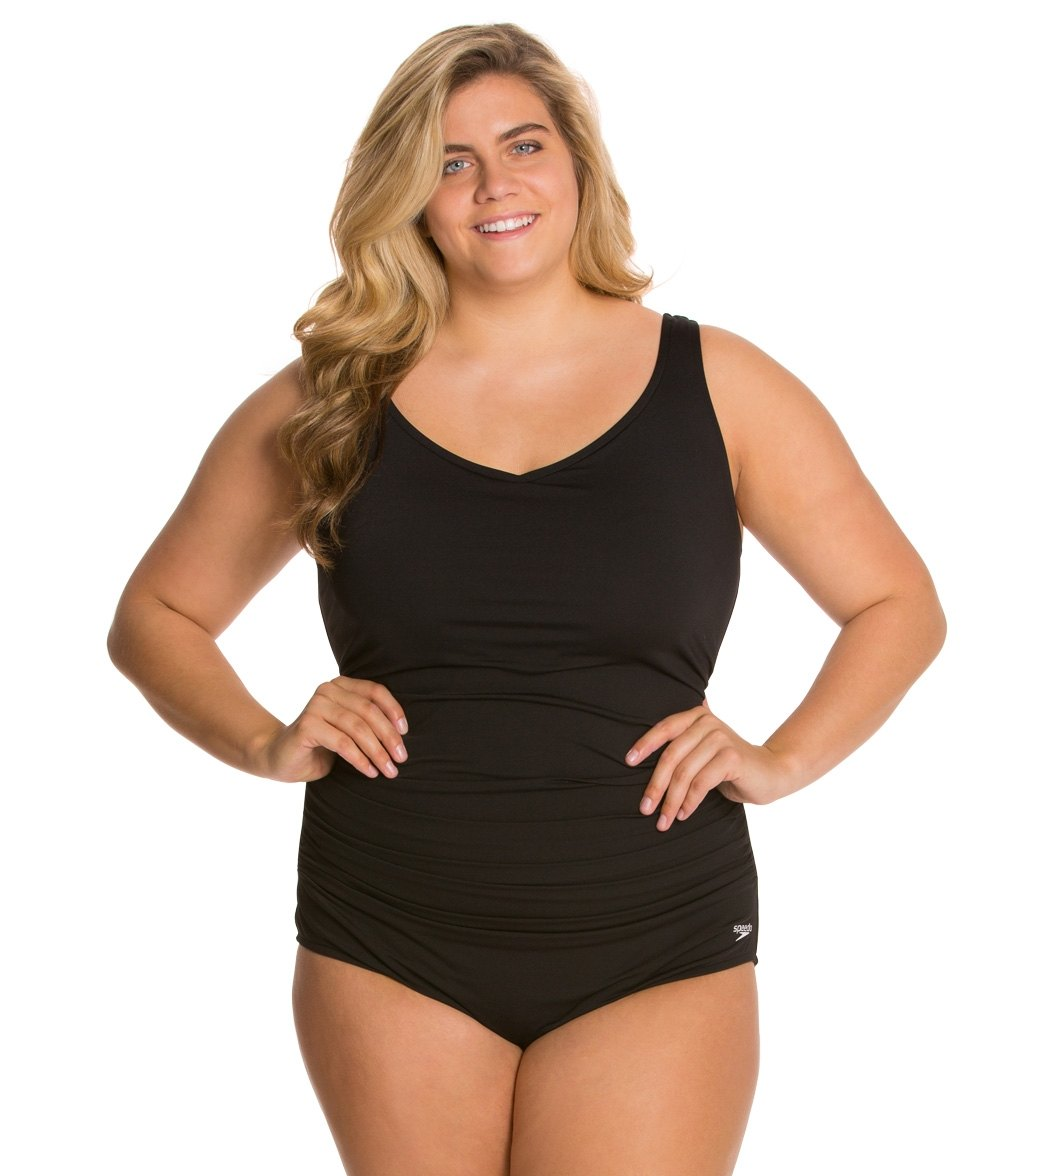 Speedo Endurance Side Shirred Contourback Plus Size One Piece Swimsuit